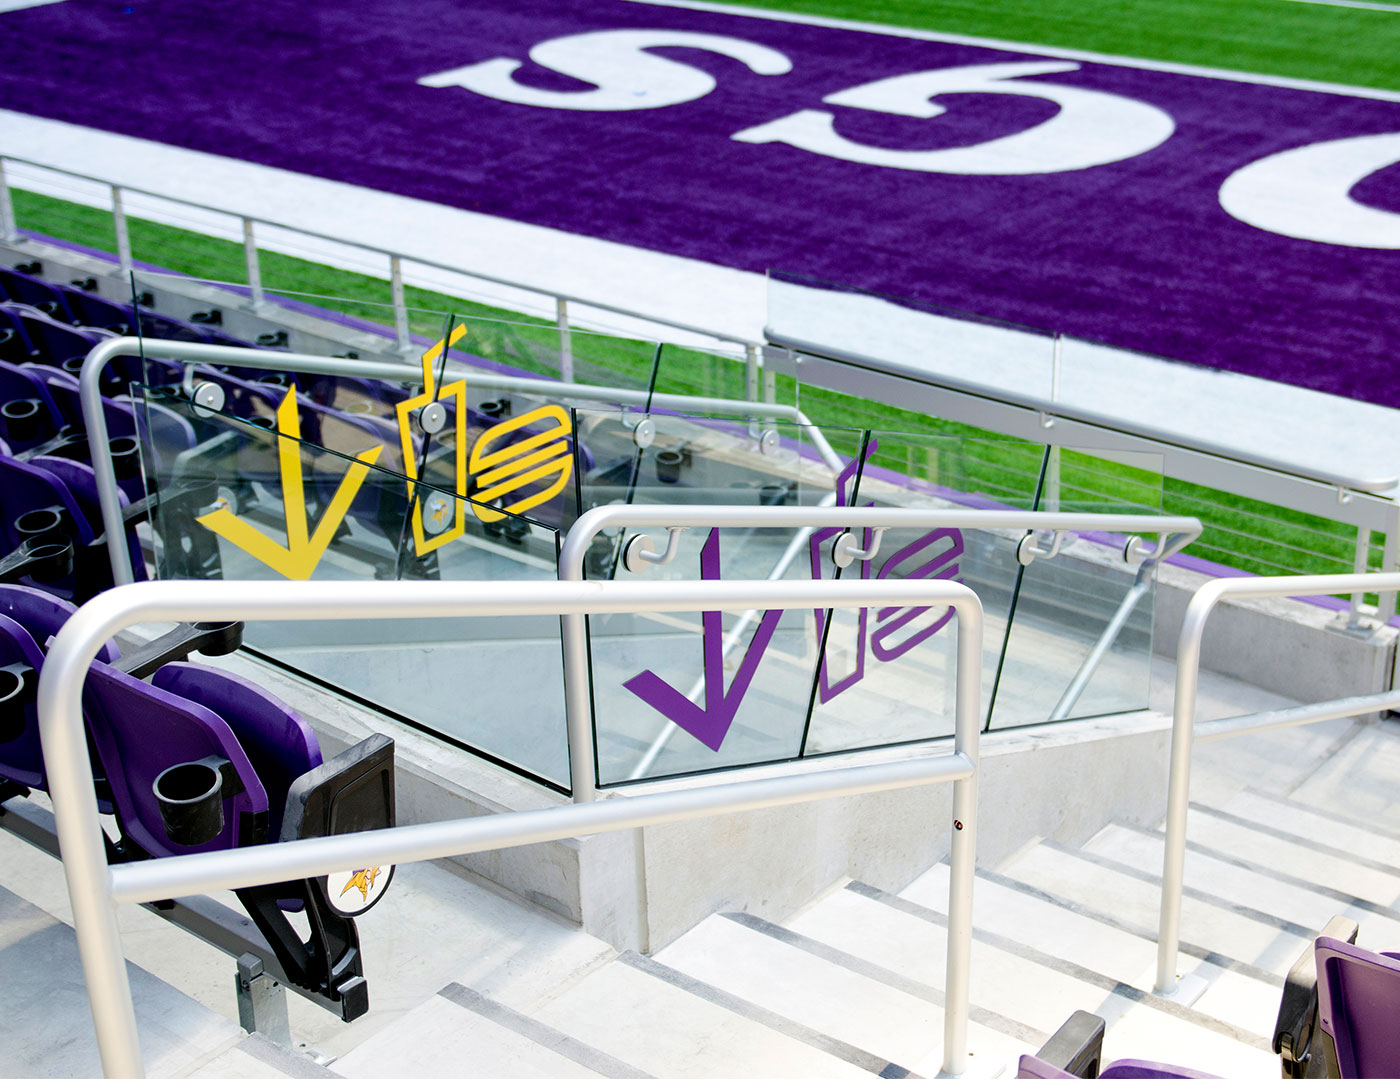 U. S. Bank Stadium fan entrances lines with Track Rail glass railing